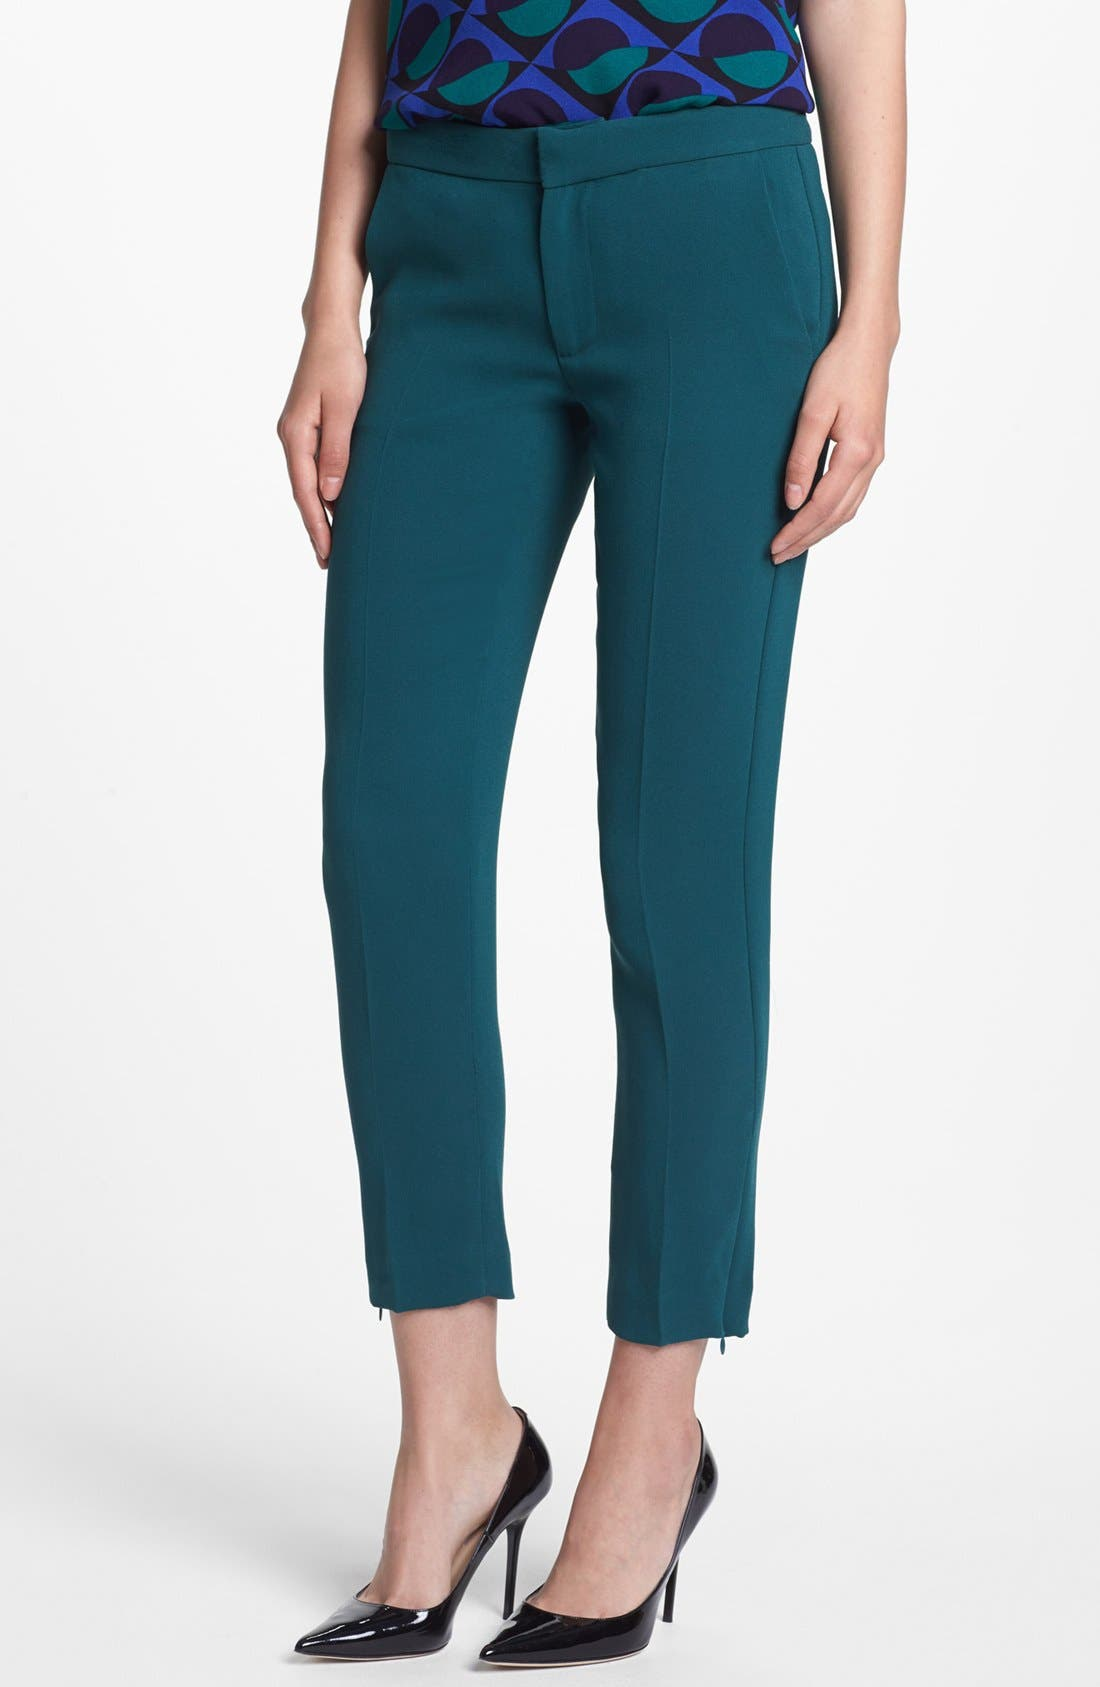 Alternate Image 1 Selected - MARC BY MARC JACOBS 'Sparks' Crepe Pants